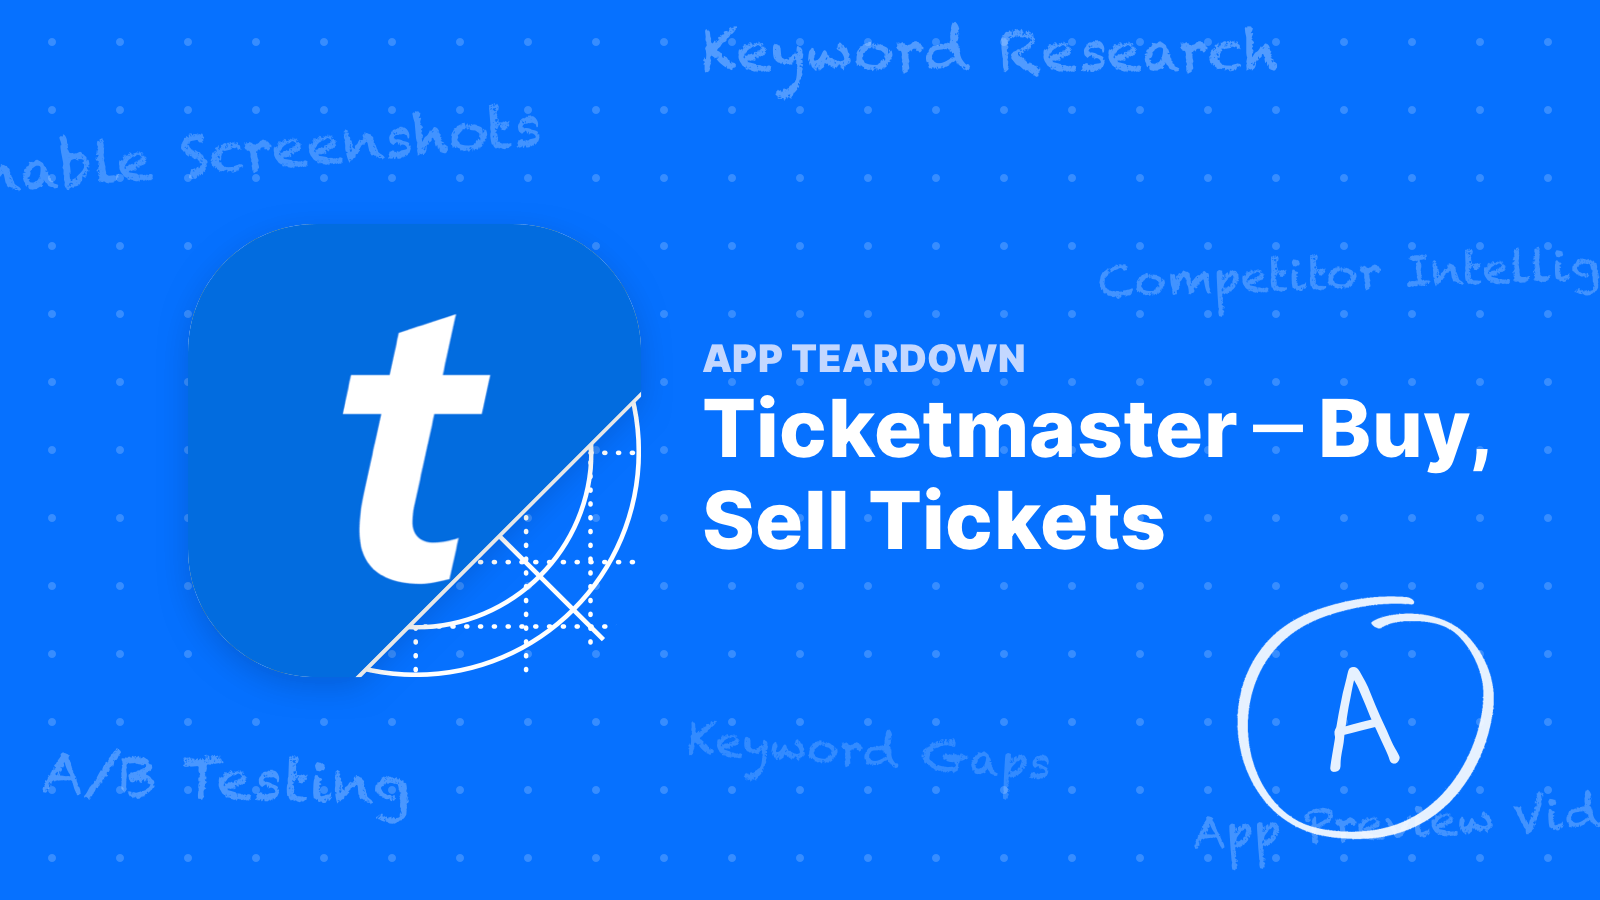 App Teardown - What's Ticketmaster Doing to Stay #1?